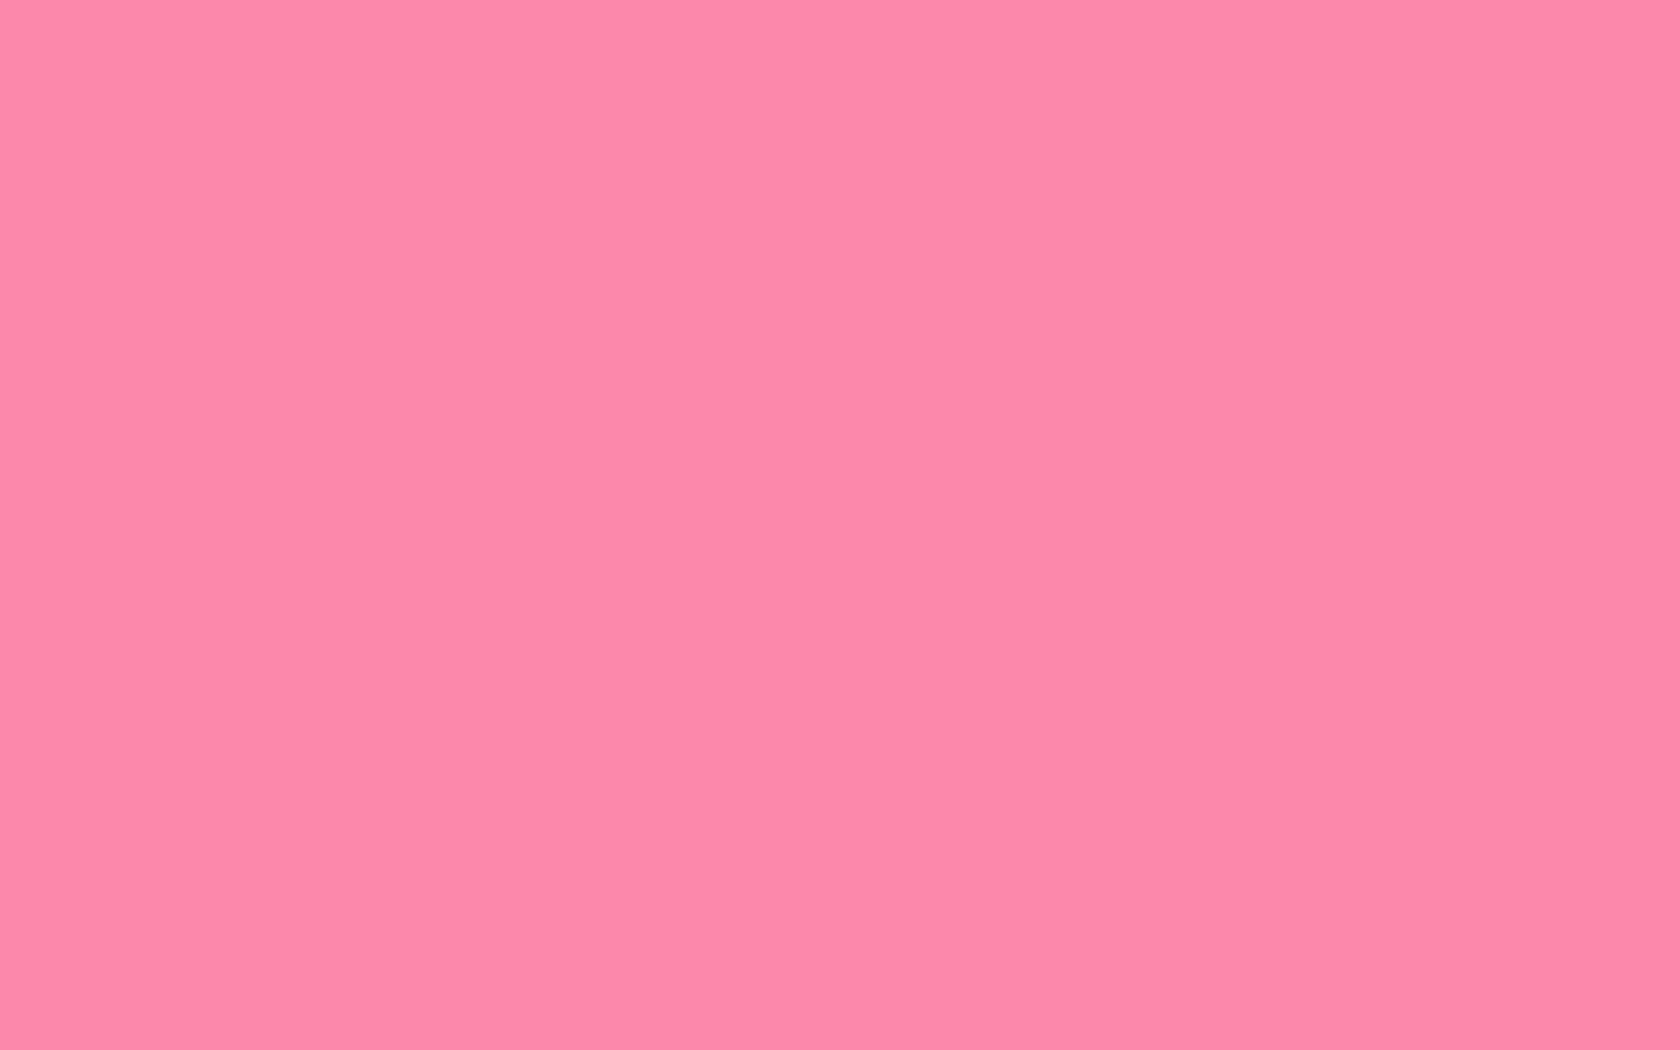 1680x1050 Tickle Me Pink Solid Color Background